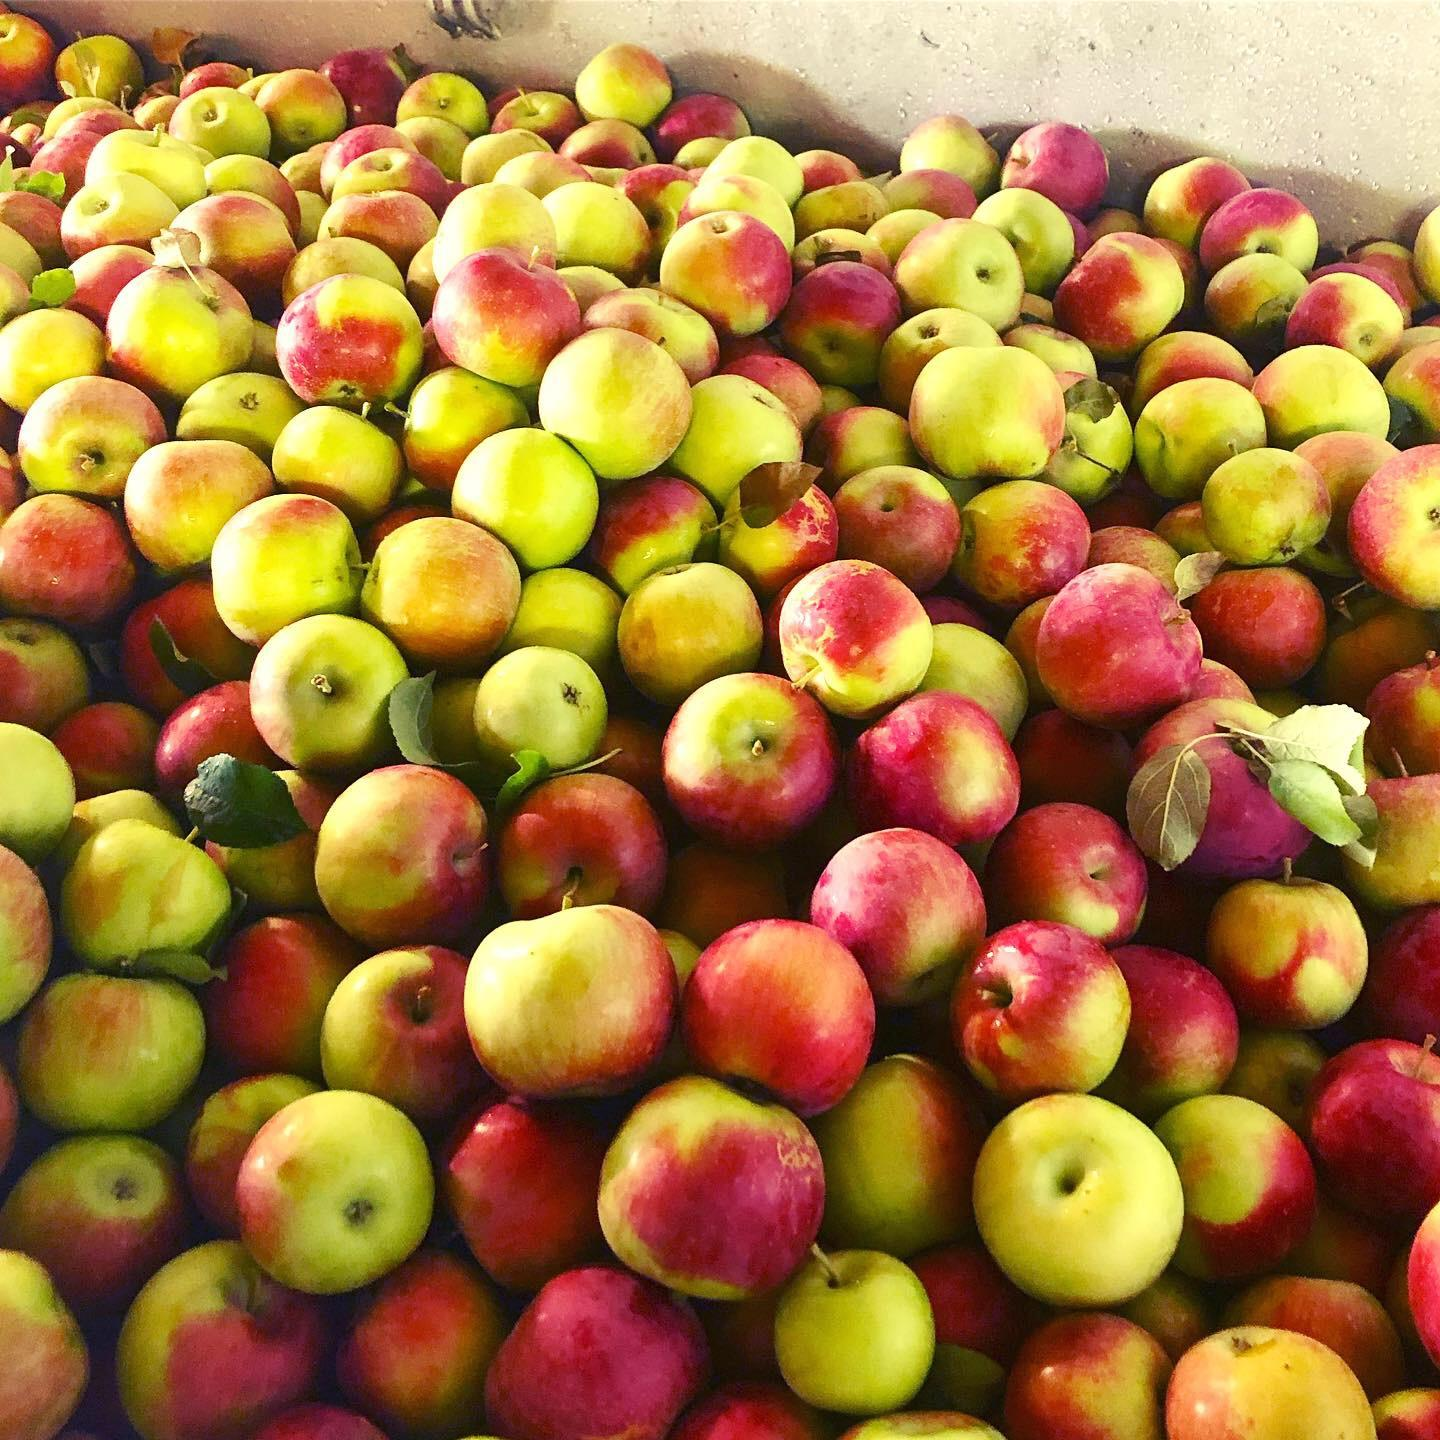 Cider Mill Apples